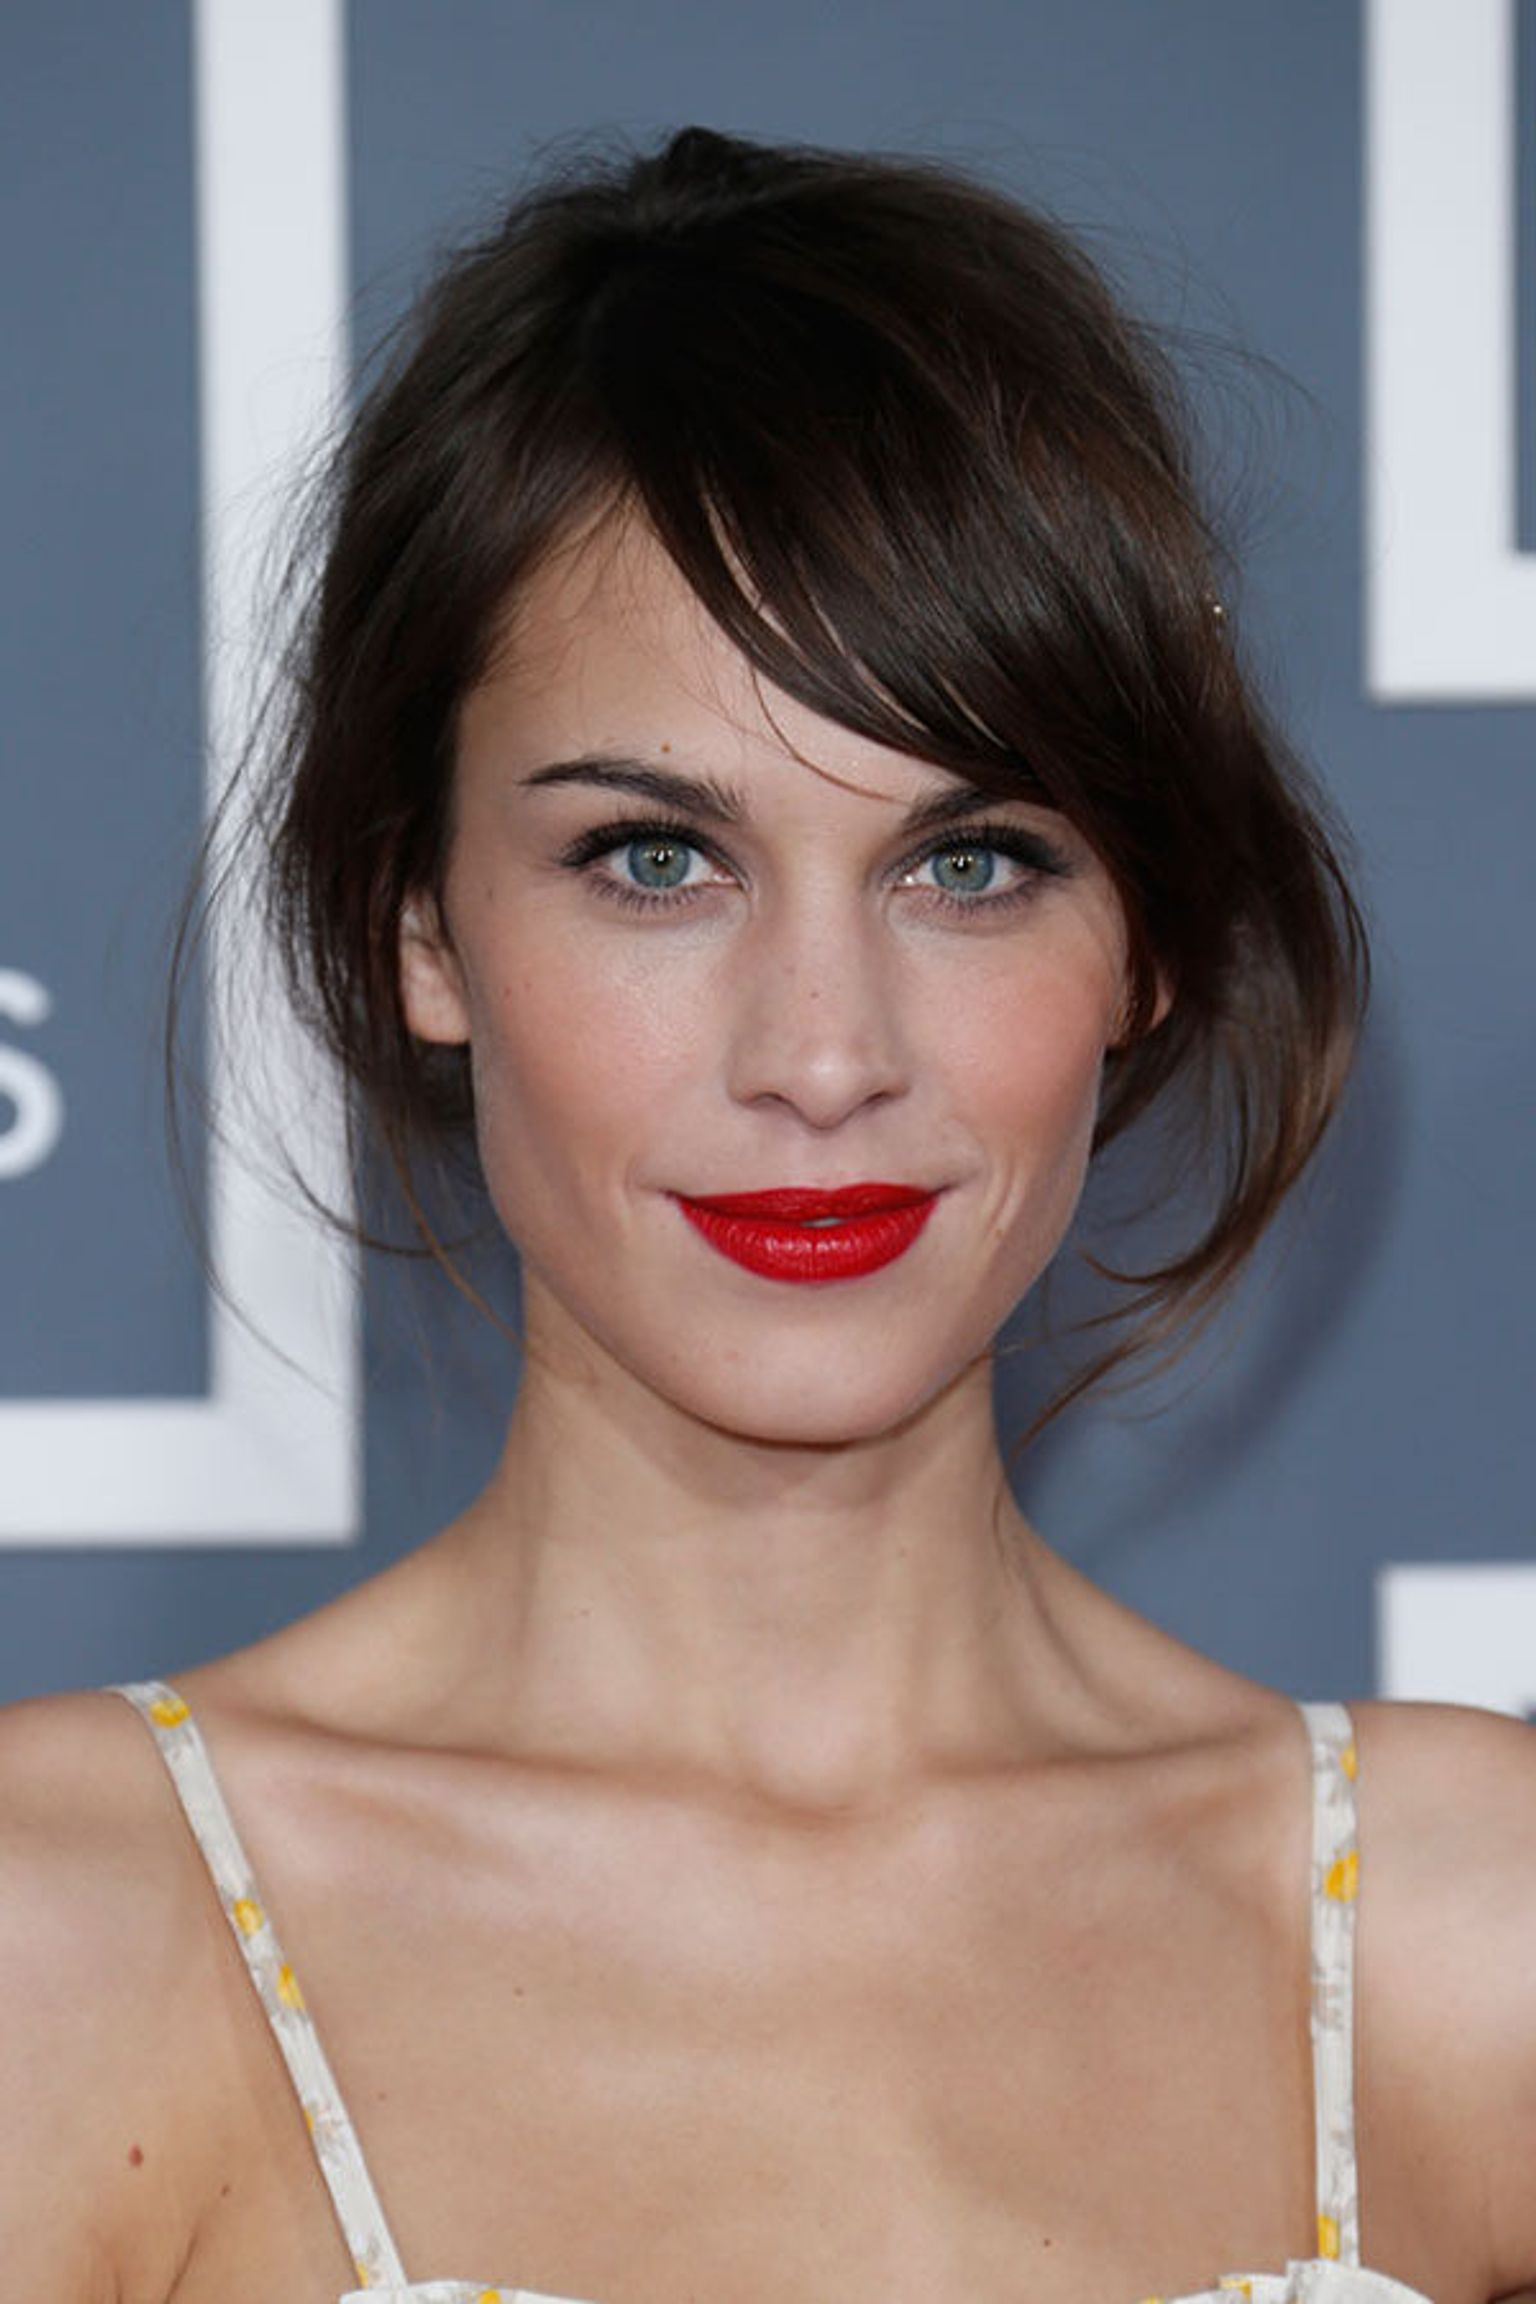 Alexa Chung is described as being part of the features face group